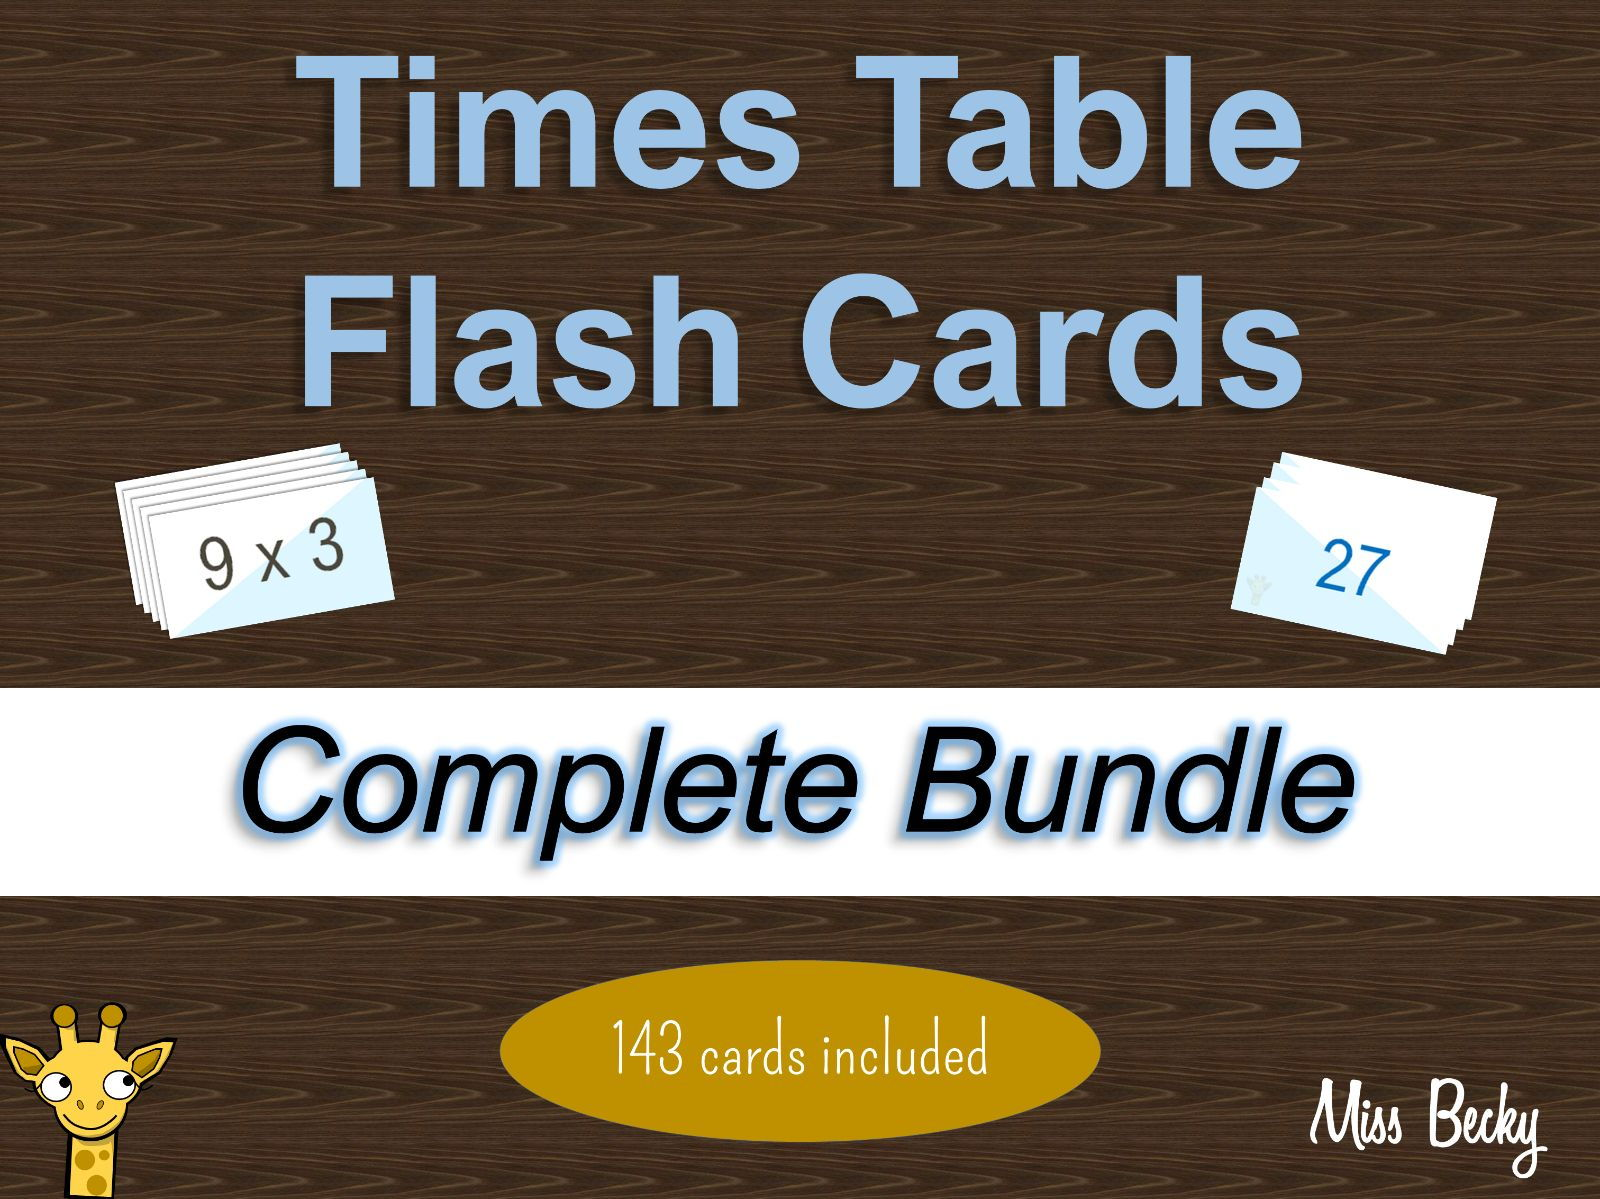 Times Table Flash Cards - Complete Bundle